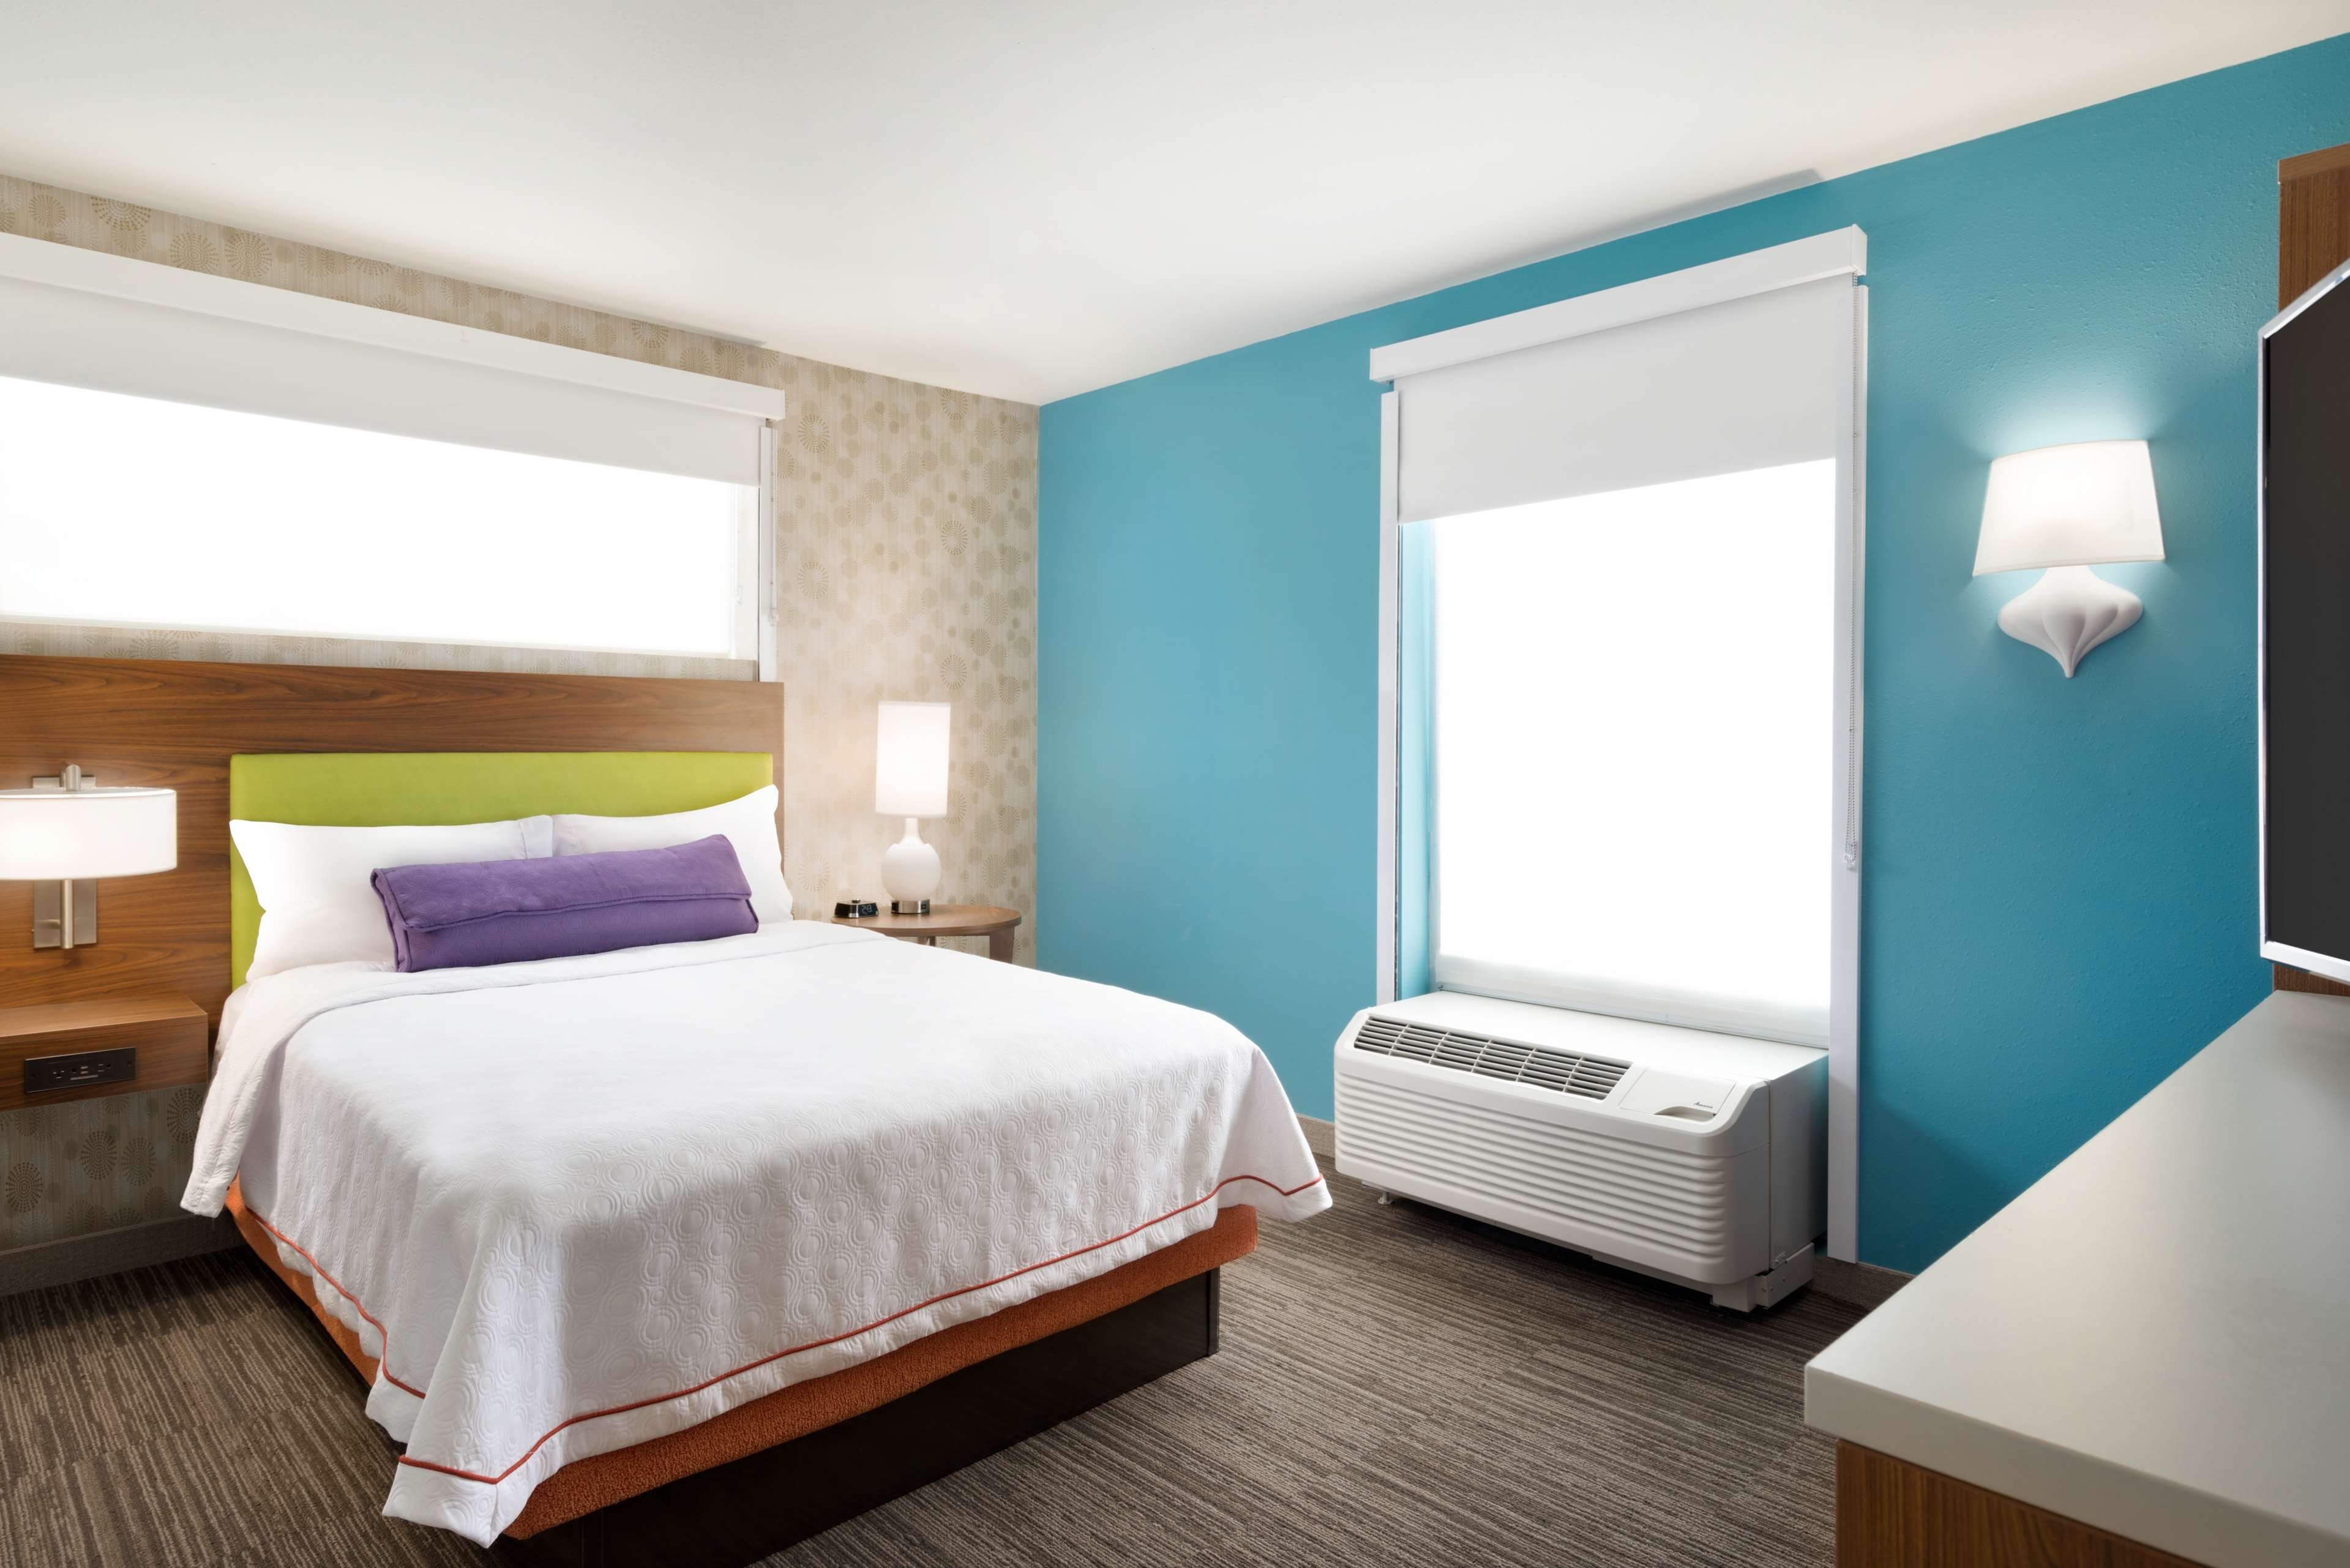 Home2 Suites by Hilton Roanoke image 21